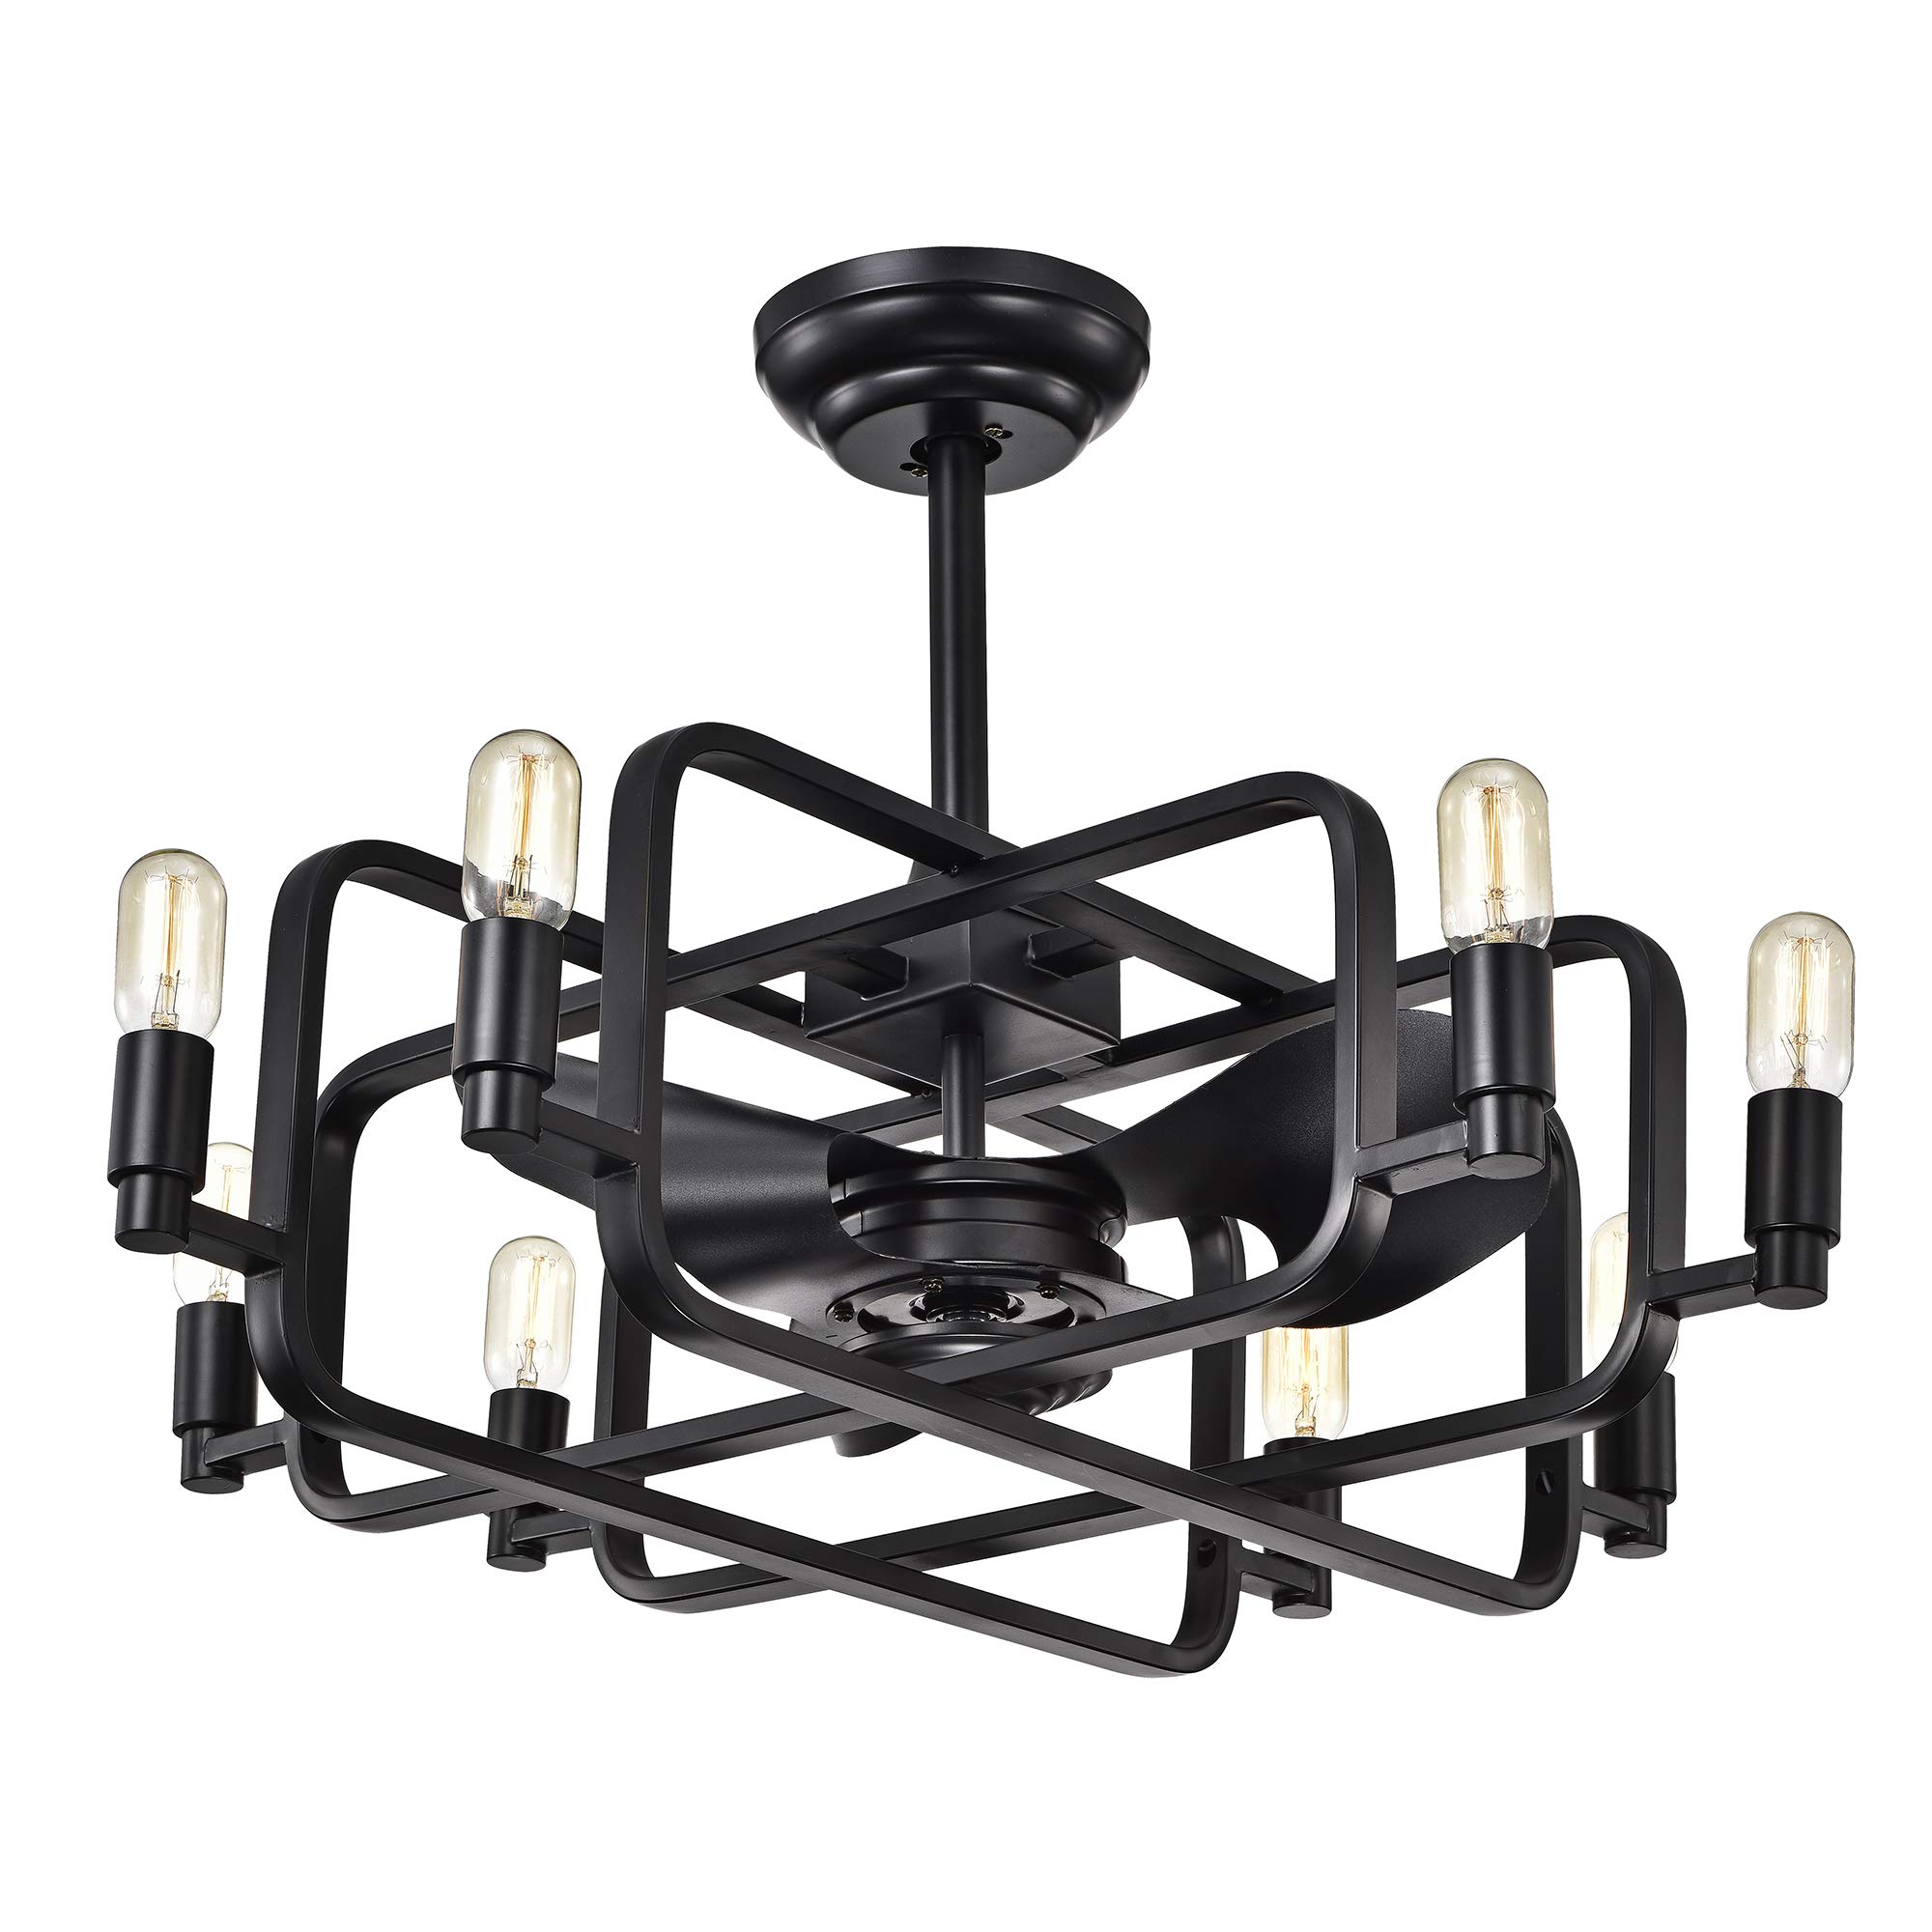 Warehouse of Tiffany CFL-8374REMO Usard Black 32-inch 8 Fandelier (Includes Remote and Light Kit) Ceiling Fan